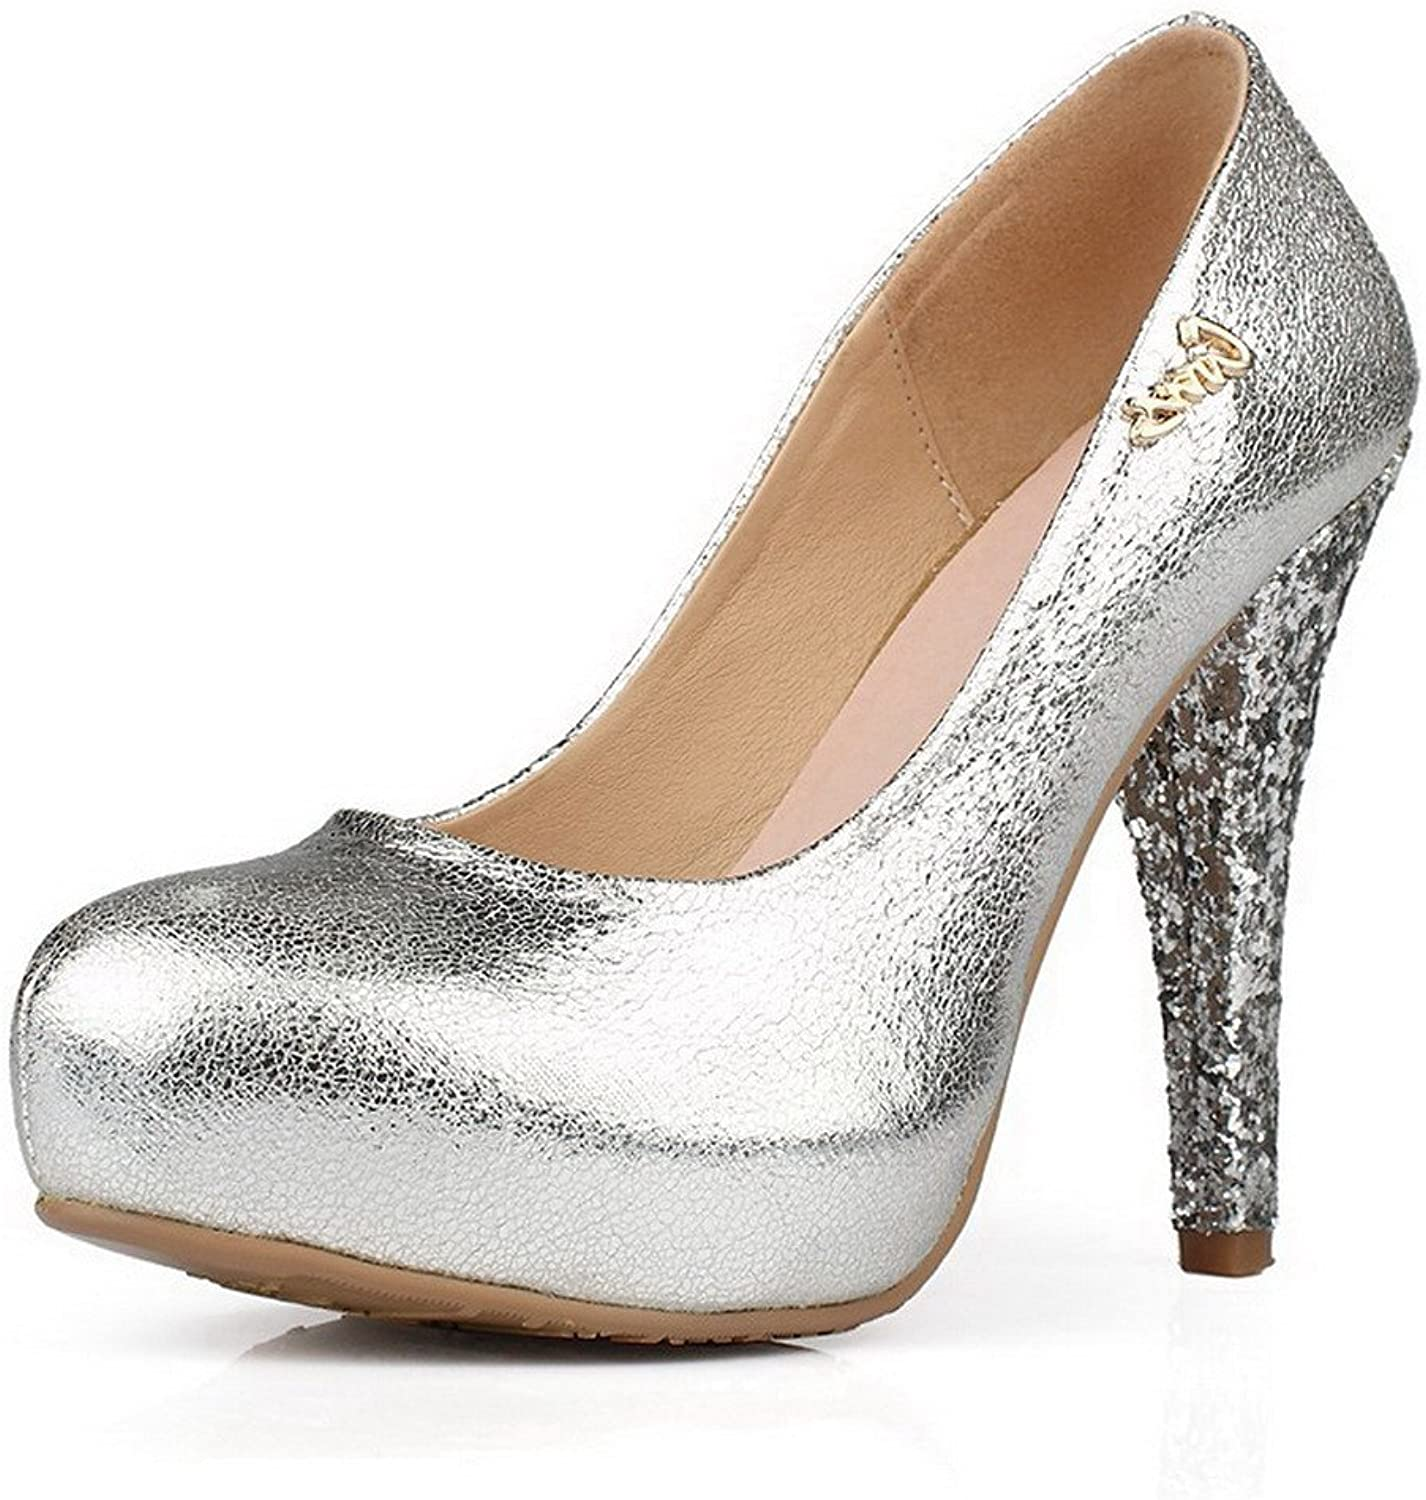 WeenFashion Women's Close Round Toe Solid Stiletto Heels Squines Pumps shoes with Metal Ornament,